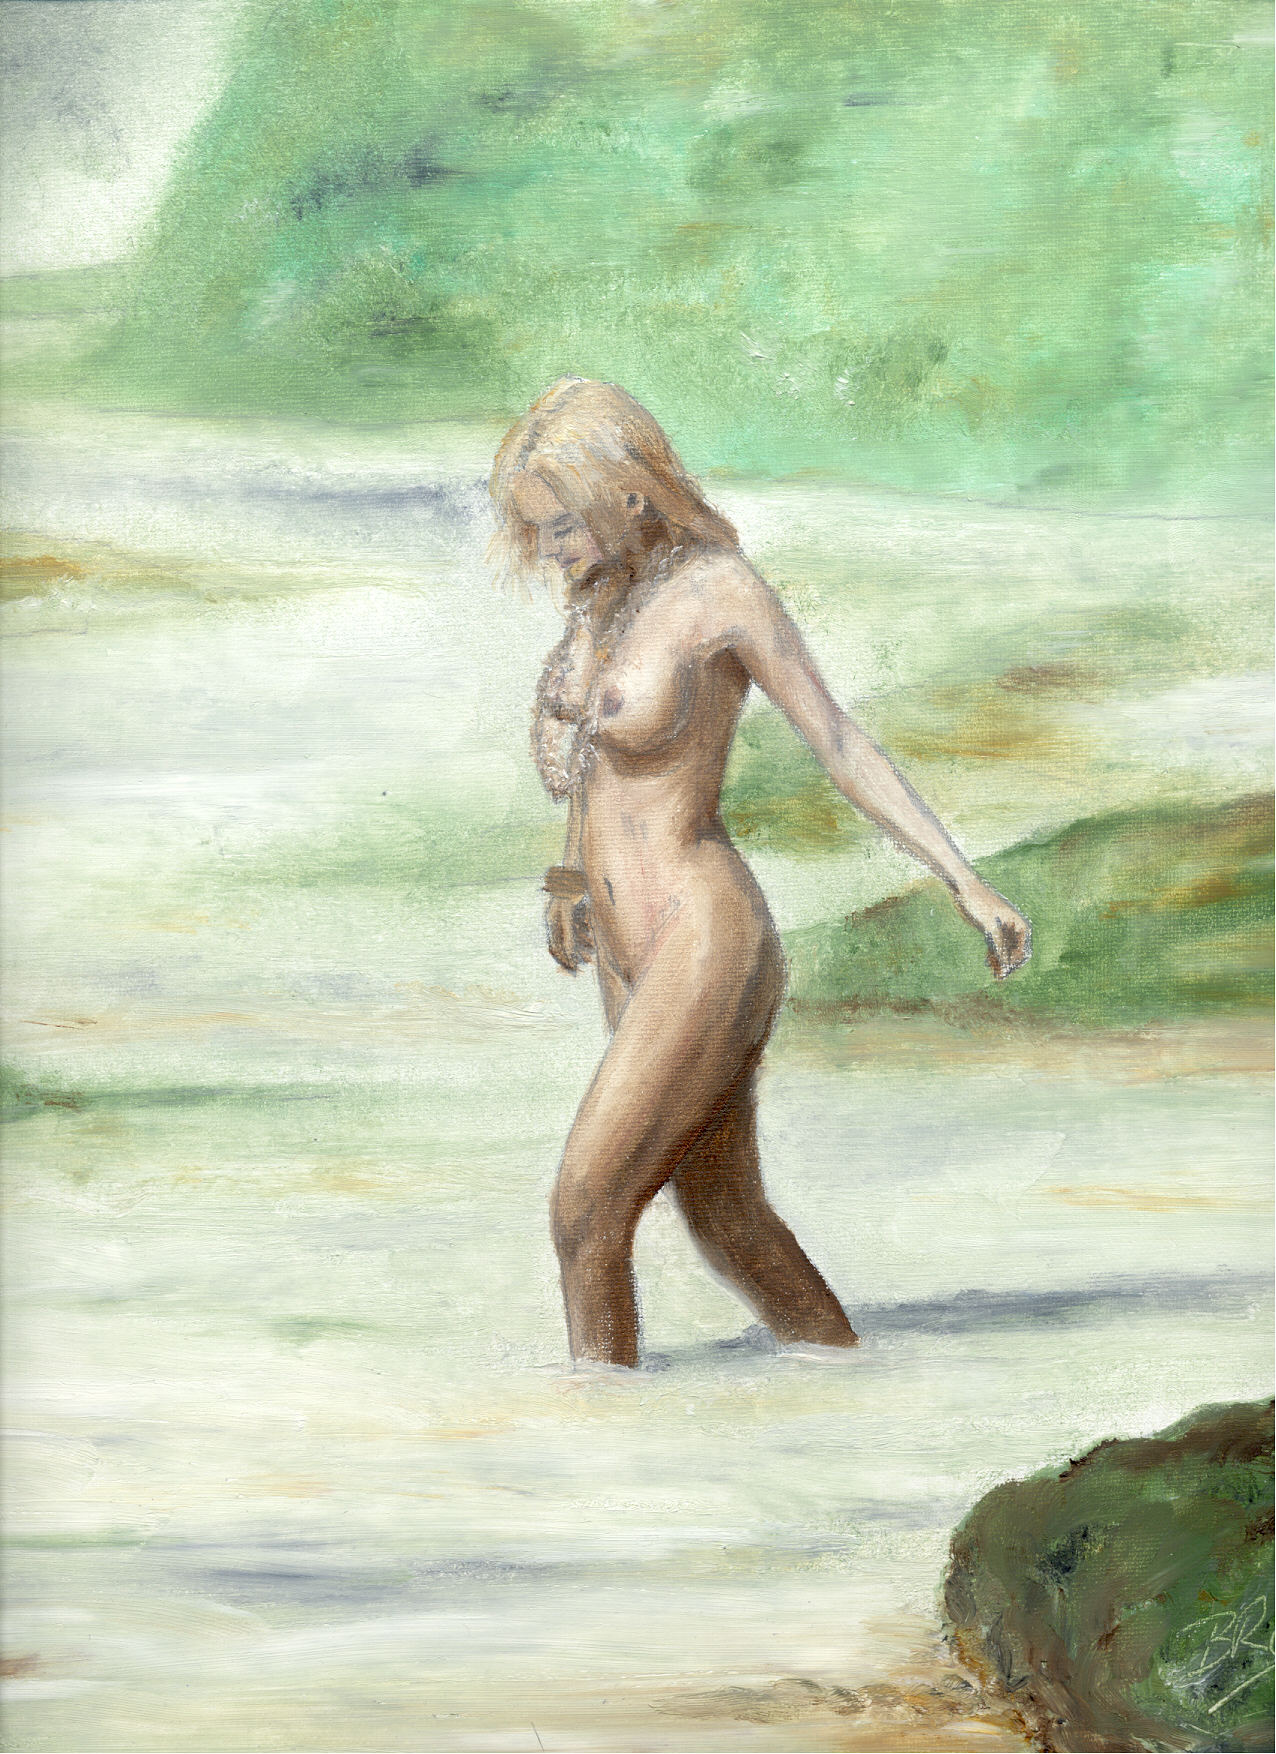 Wading in the Sea - Oil Painting